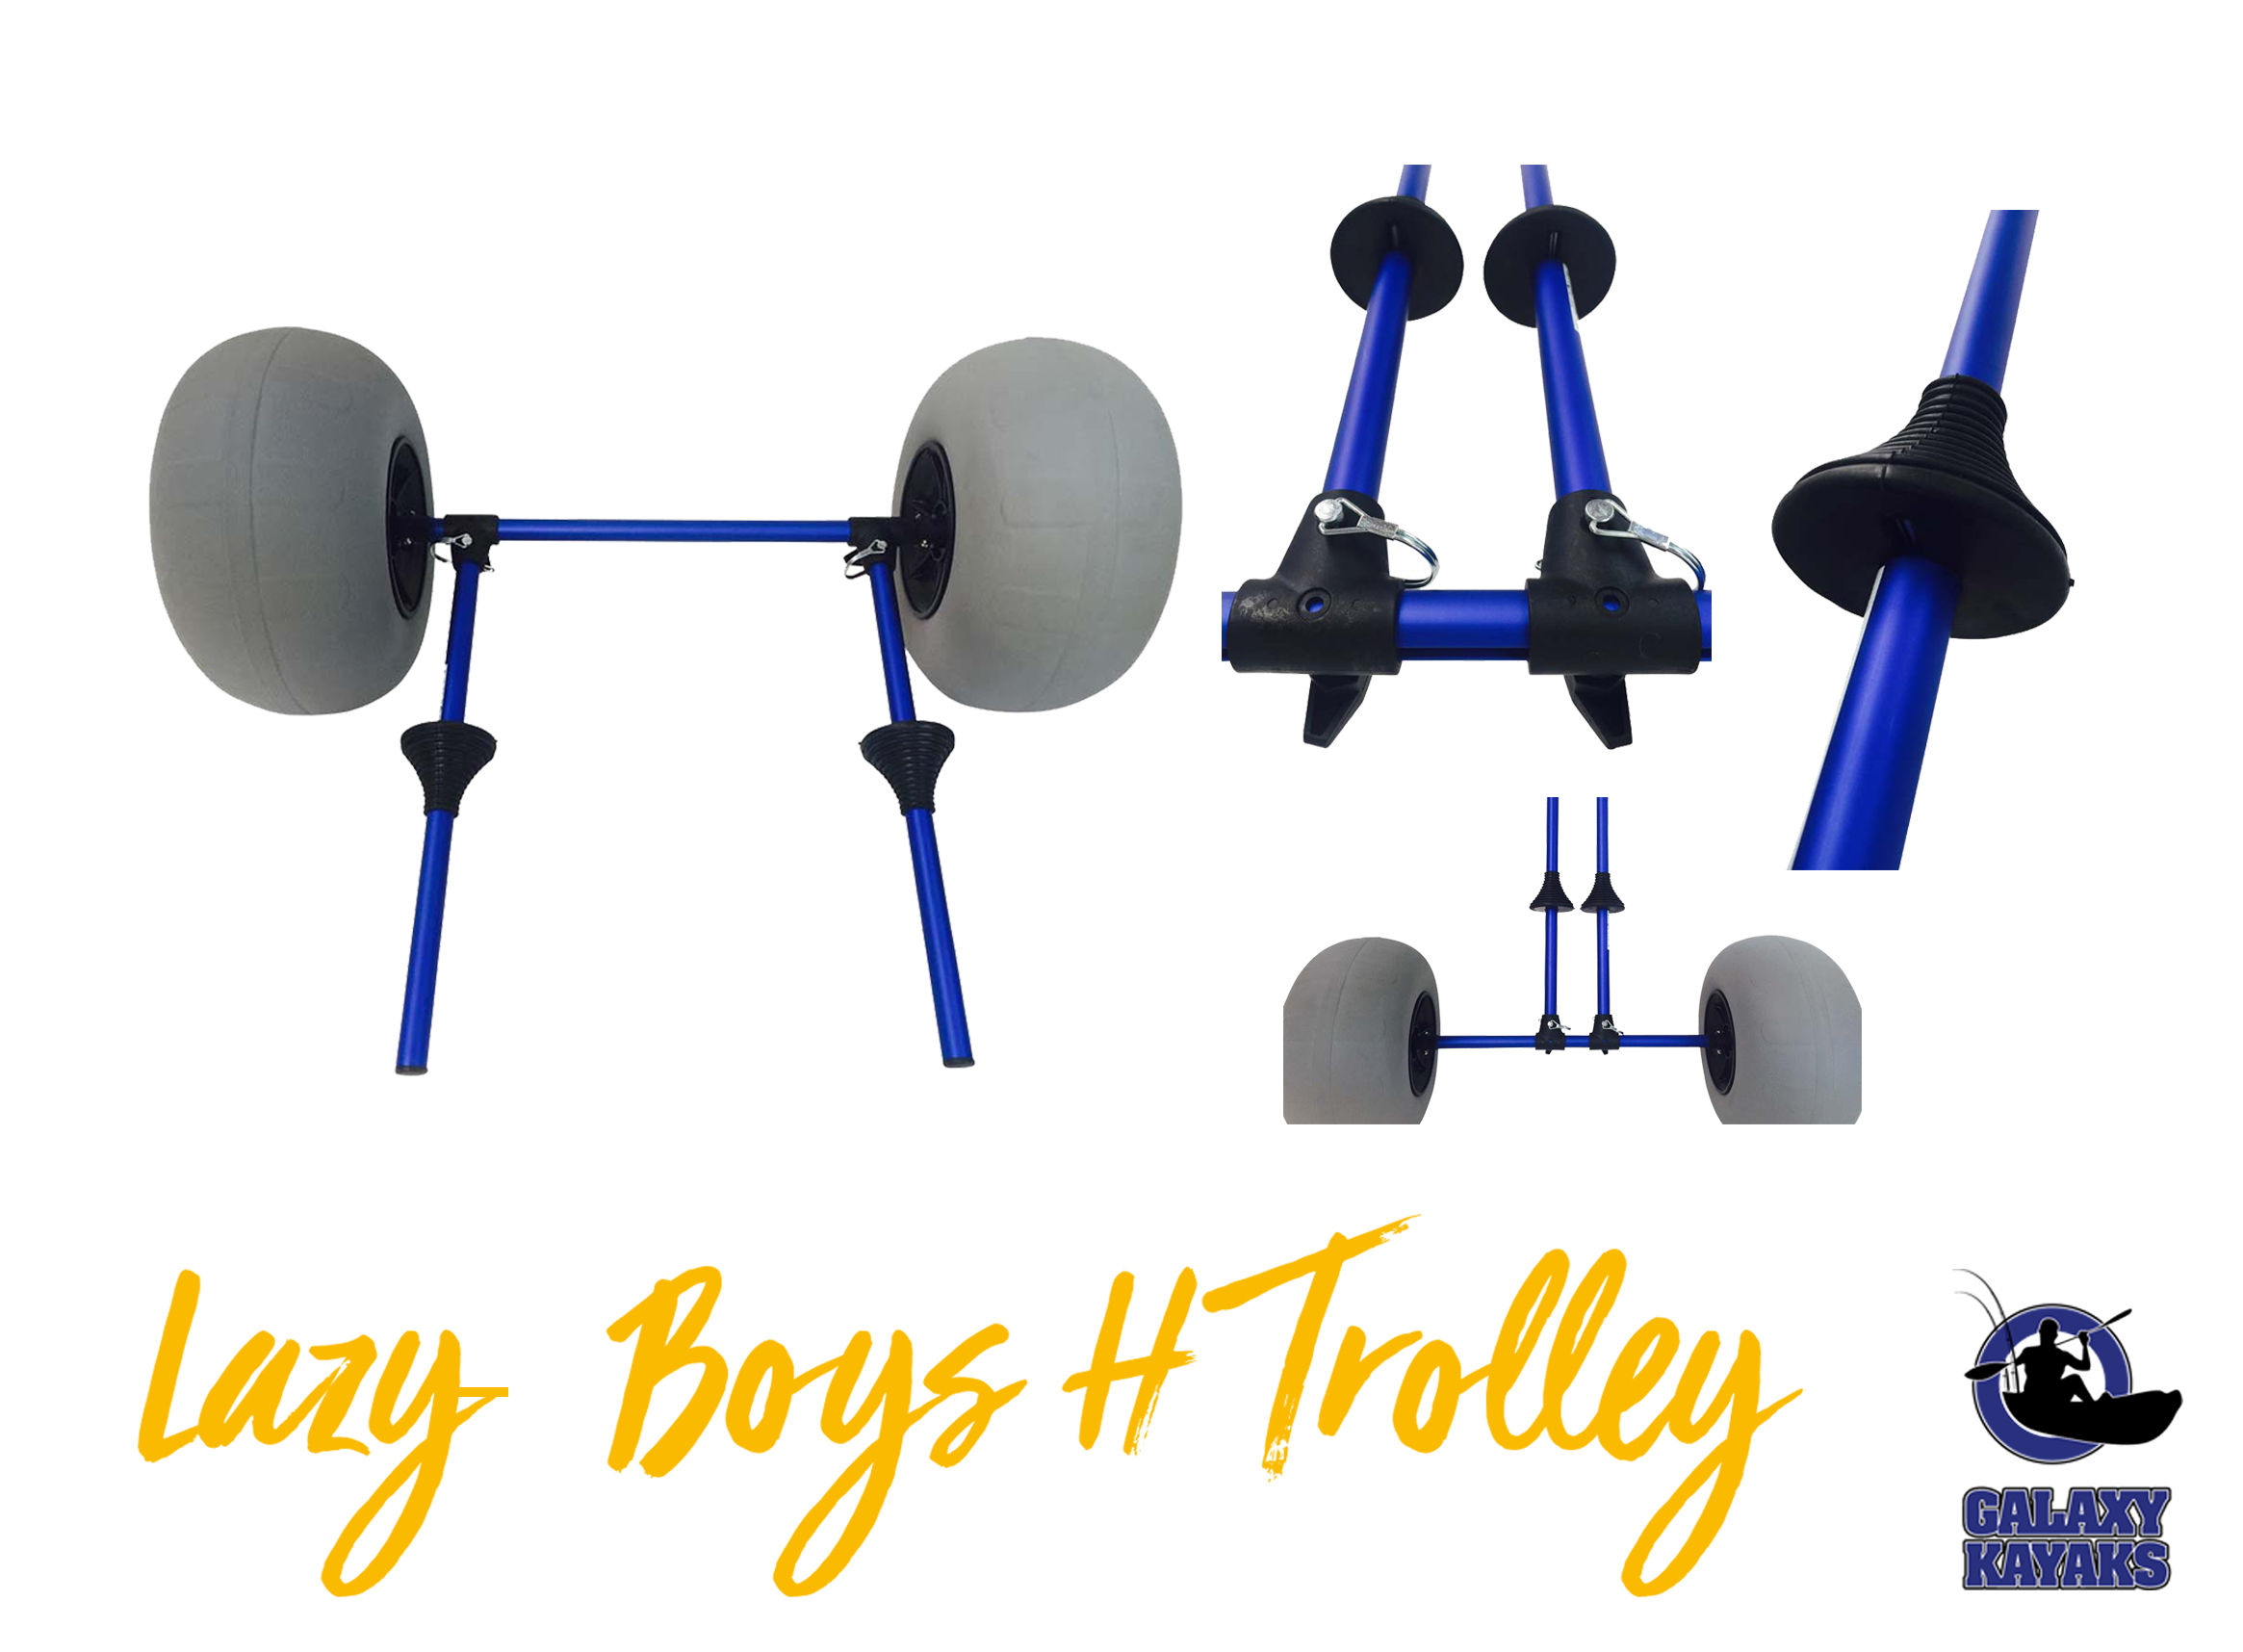 Lazy-Boys H Trolley